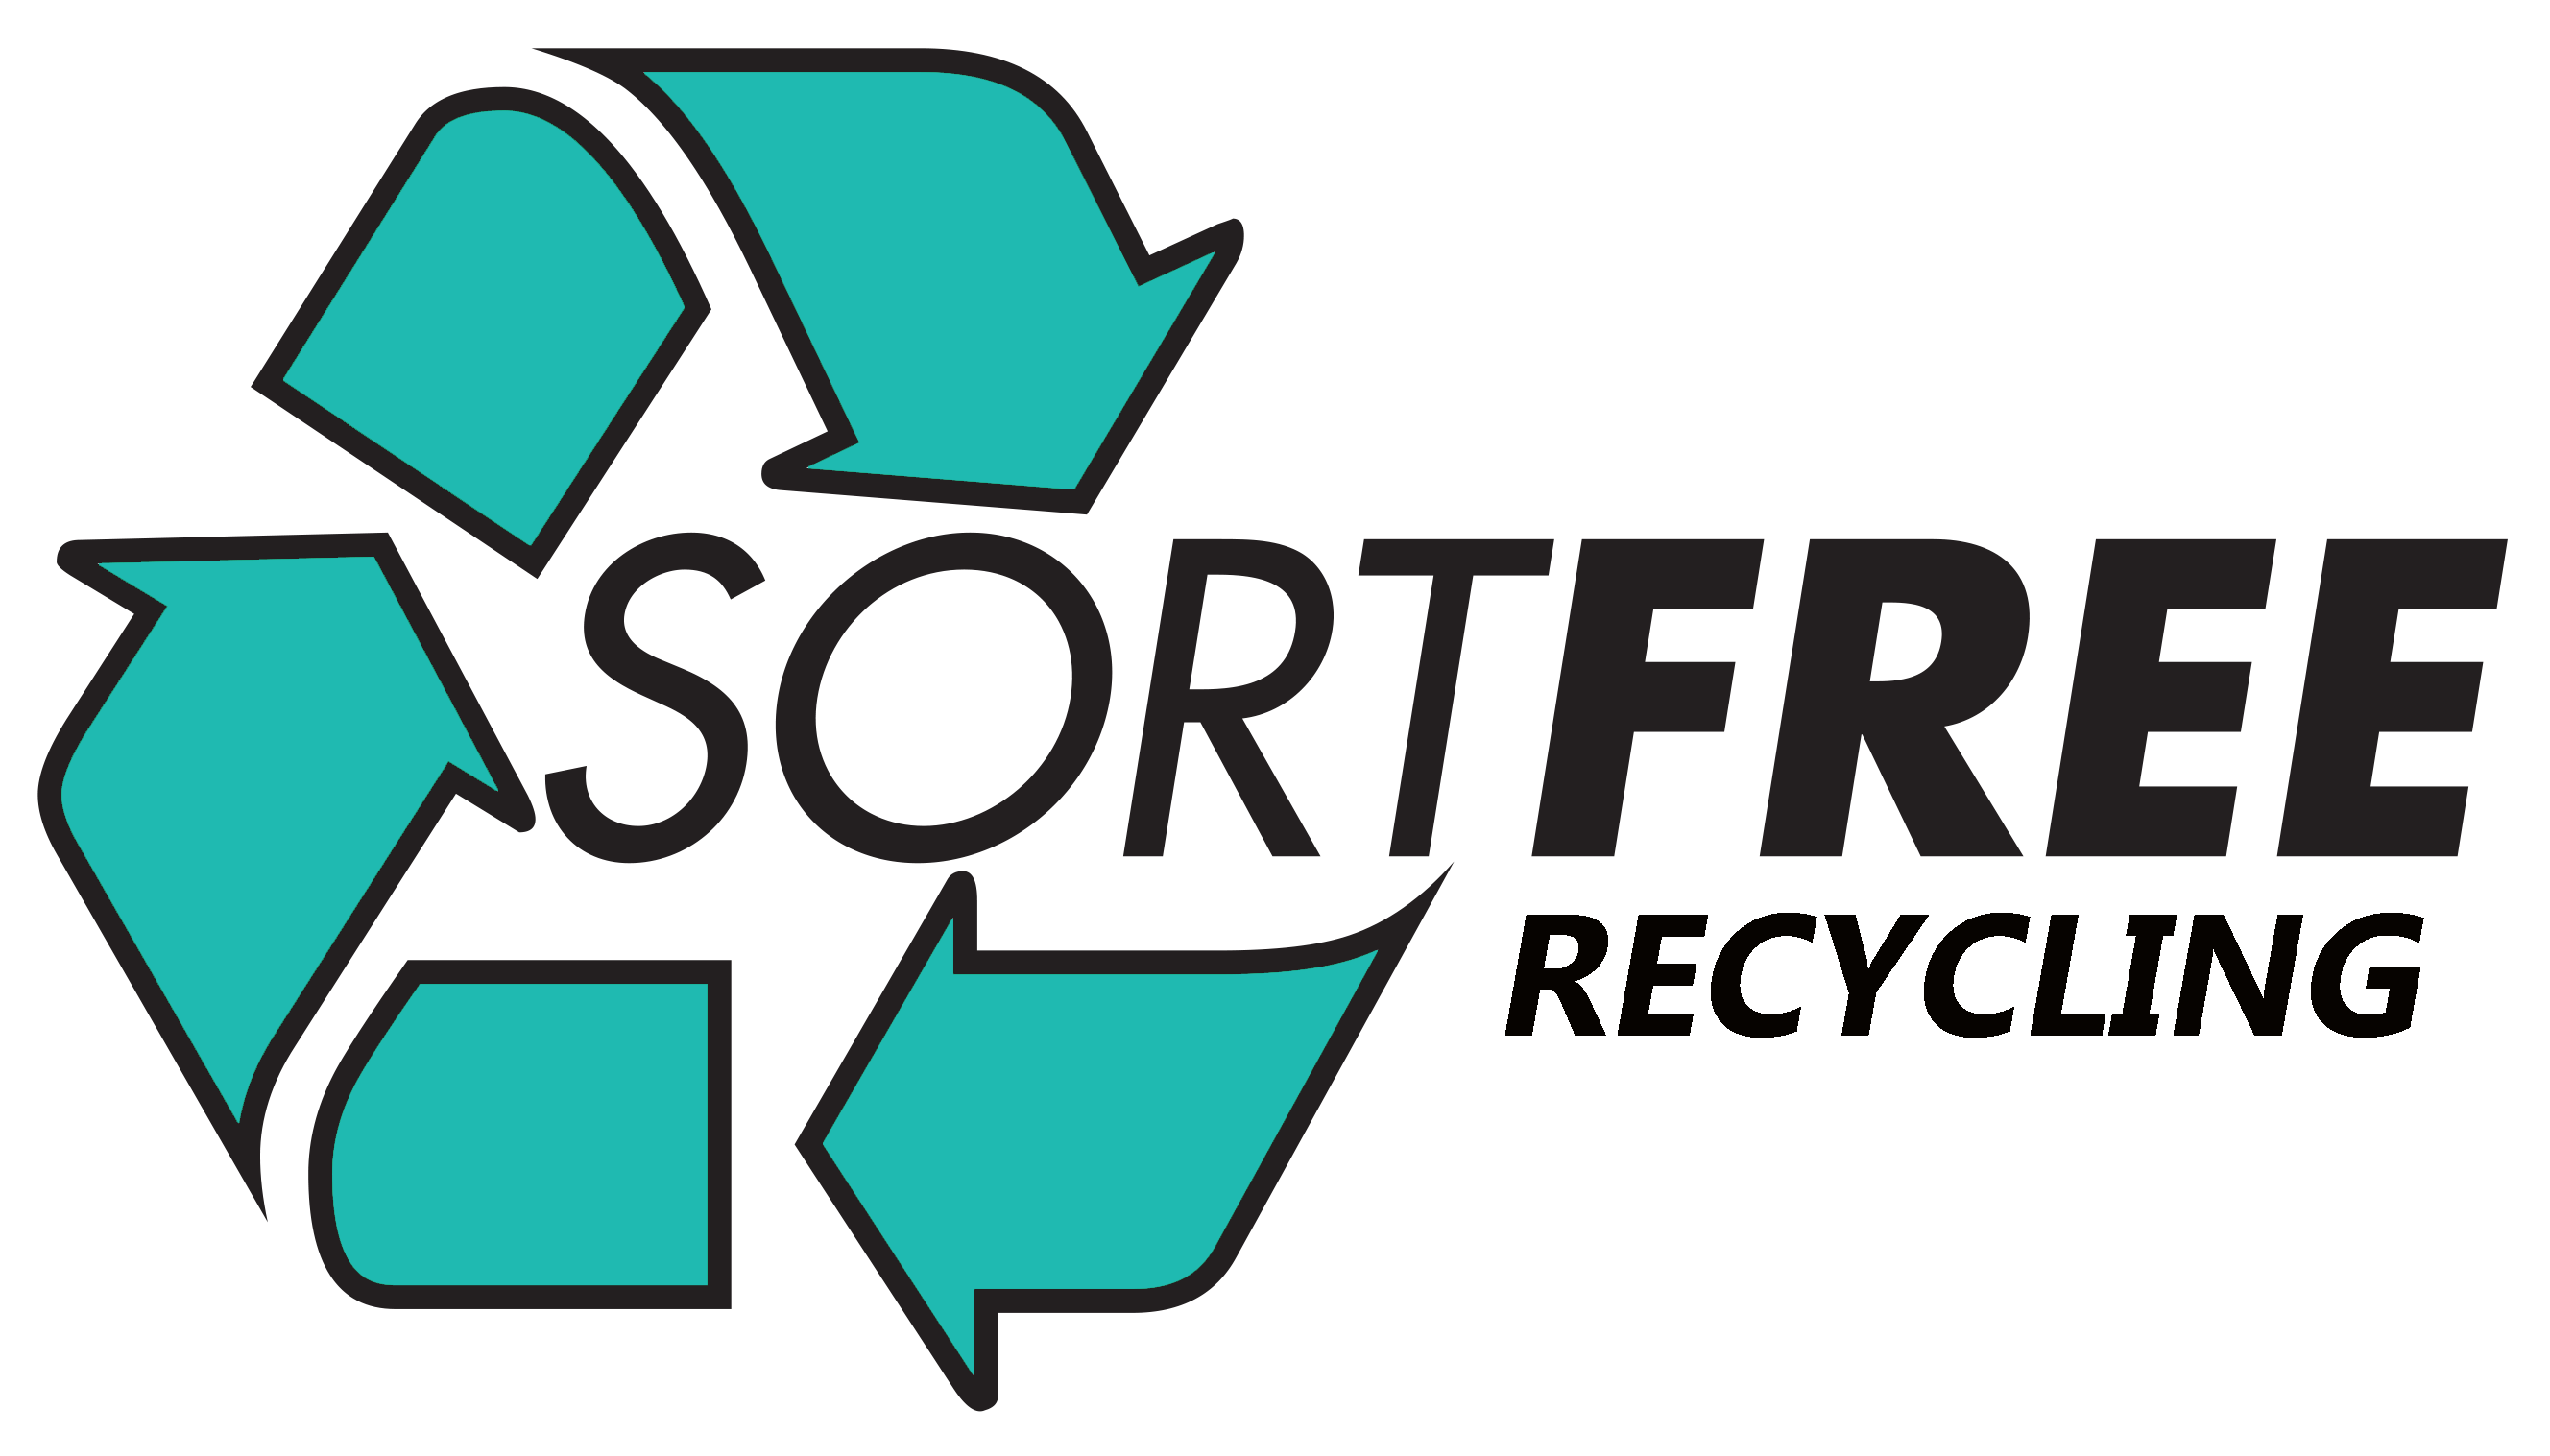 SORTFREEWITHRECYCLING